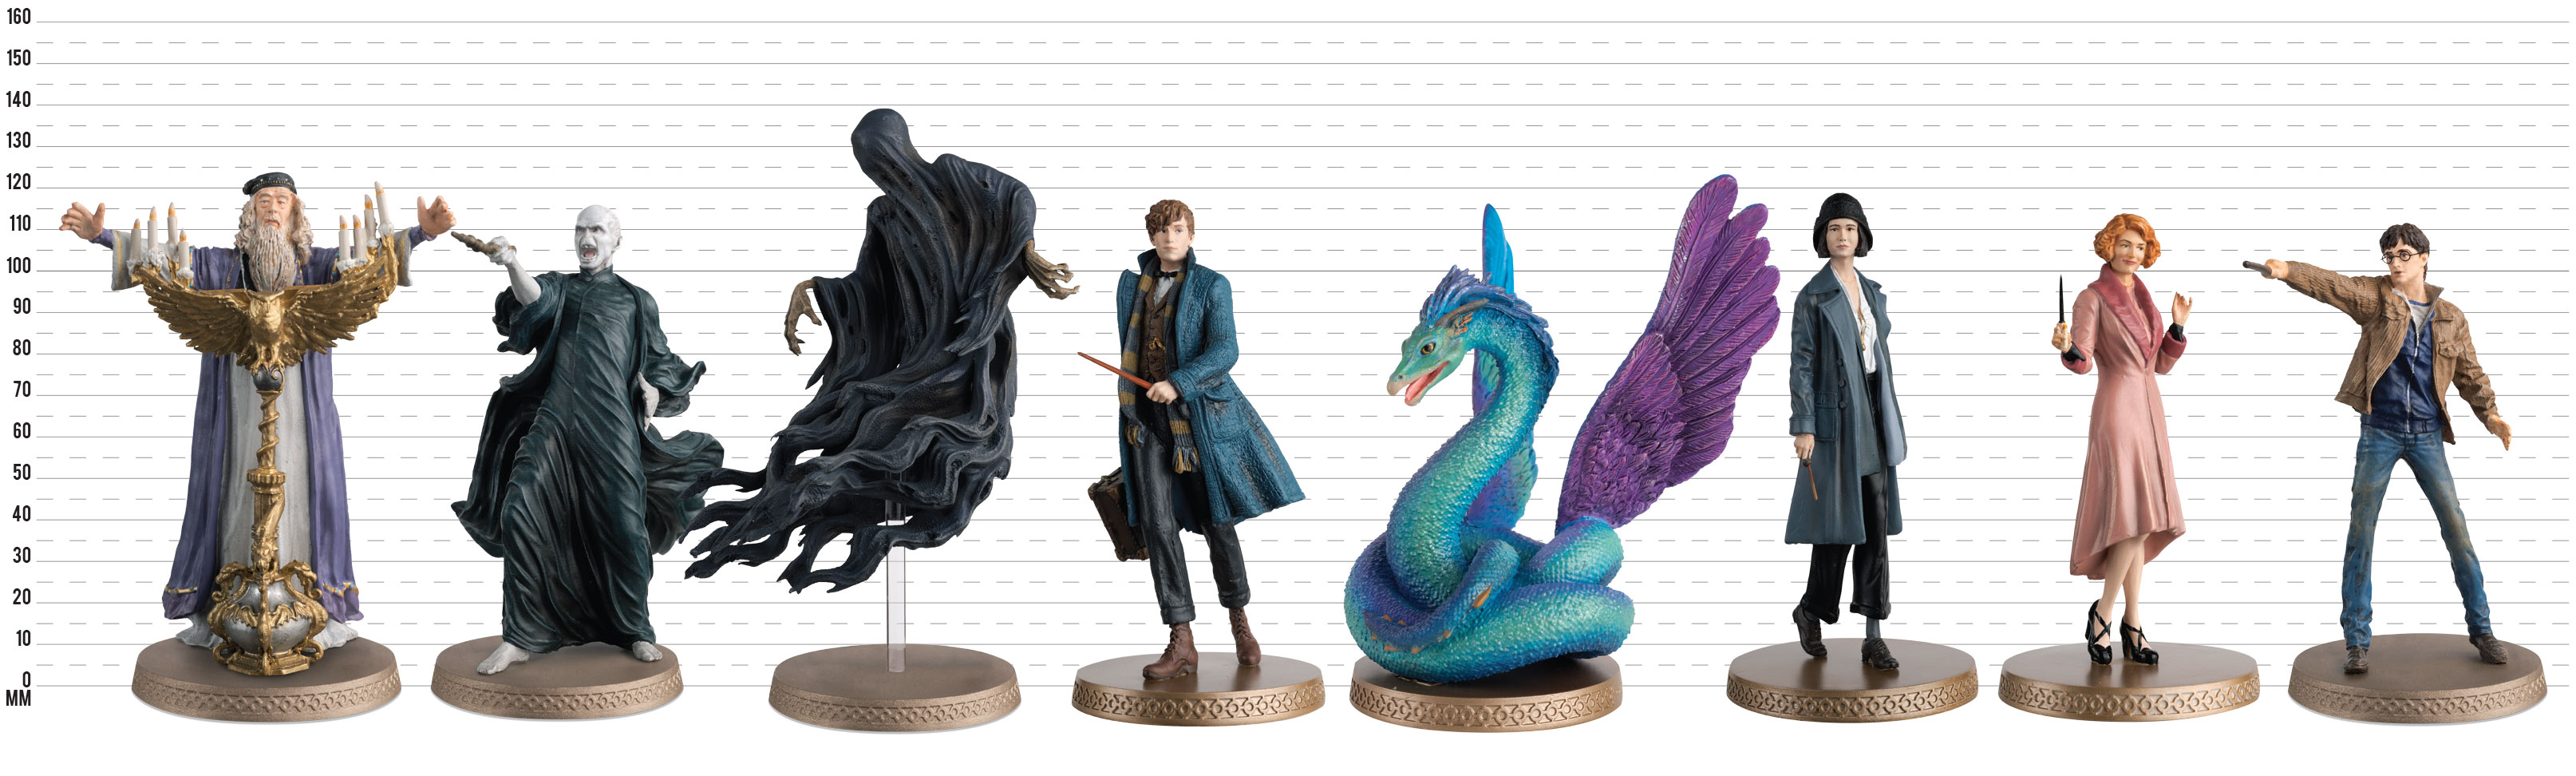 Harry Potter Figurines Line-up